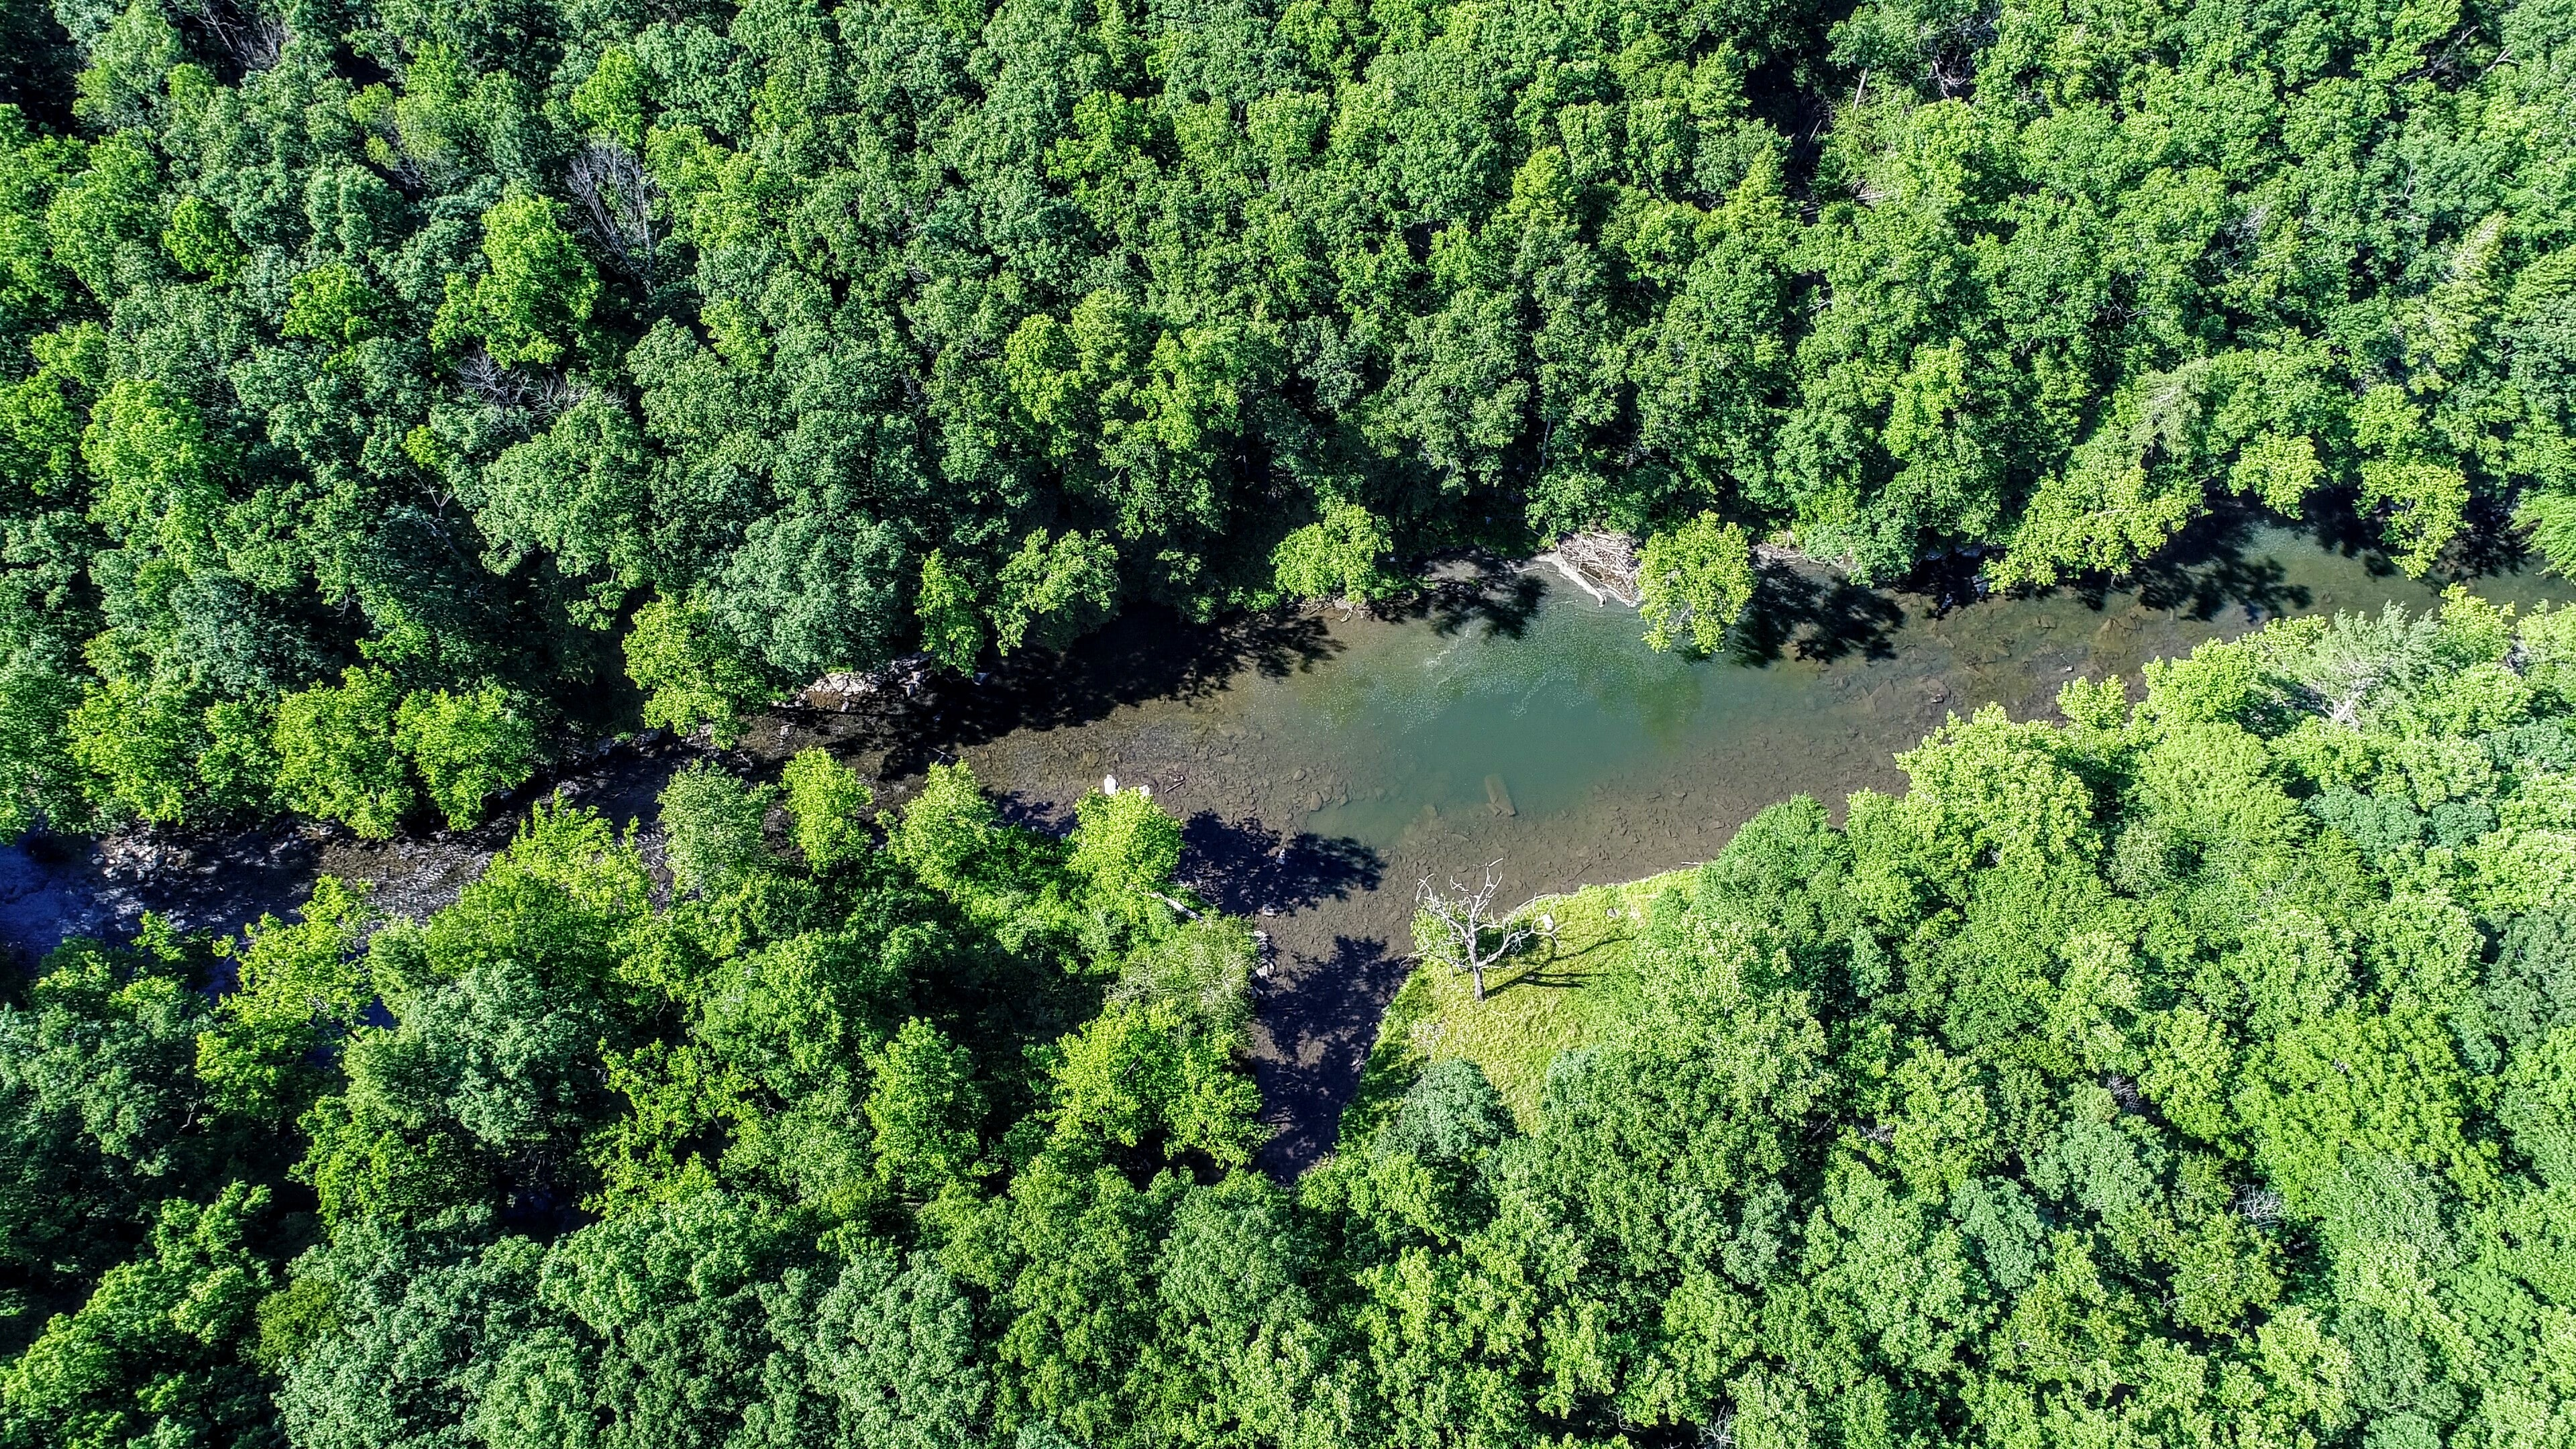 birds eye view photography of trees